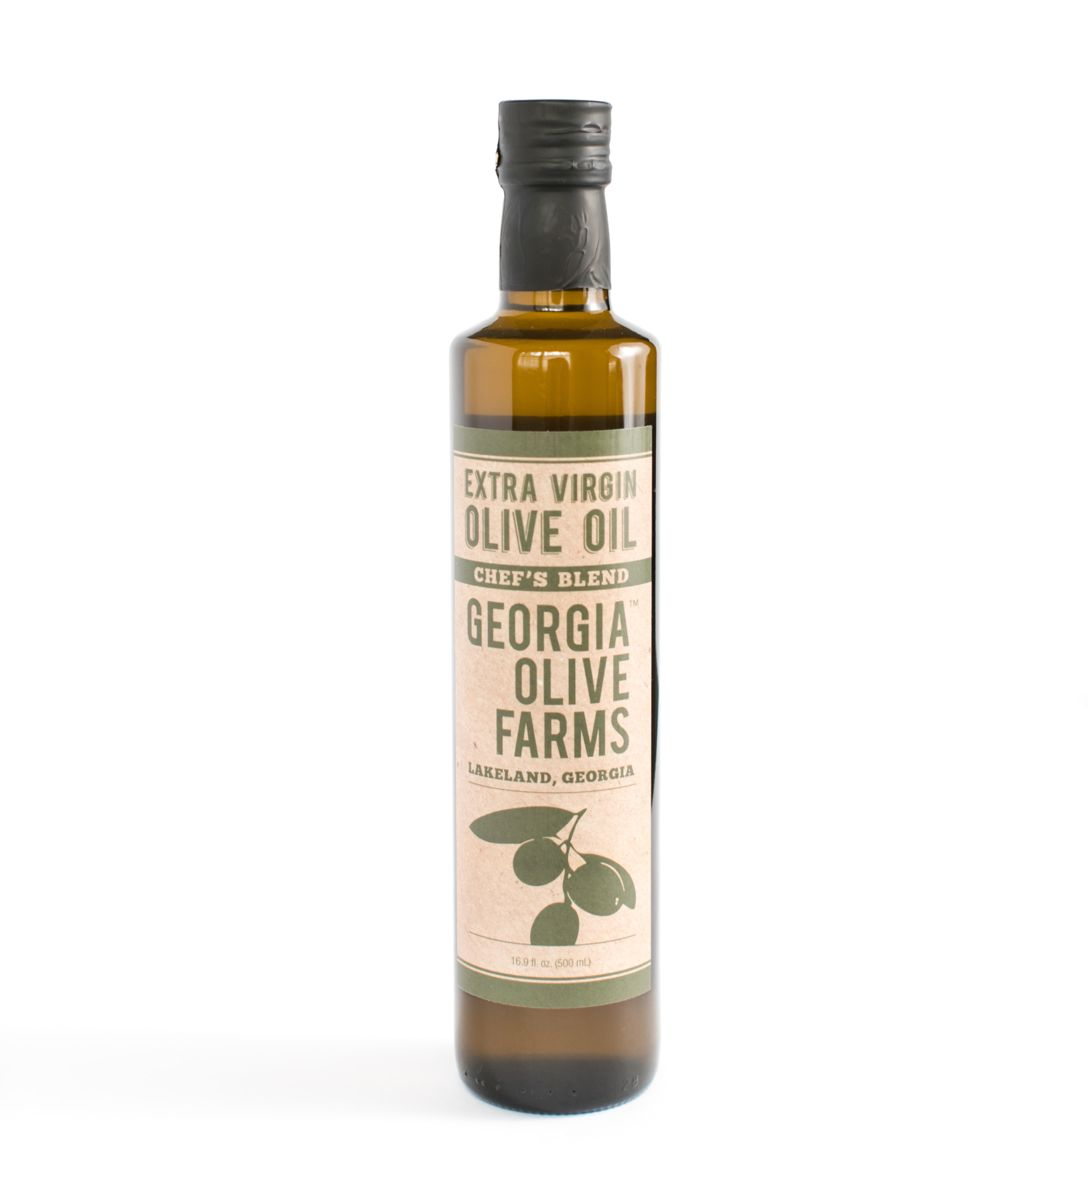 Olive Oil from Georgia Olive Farms